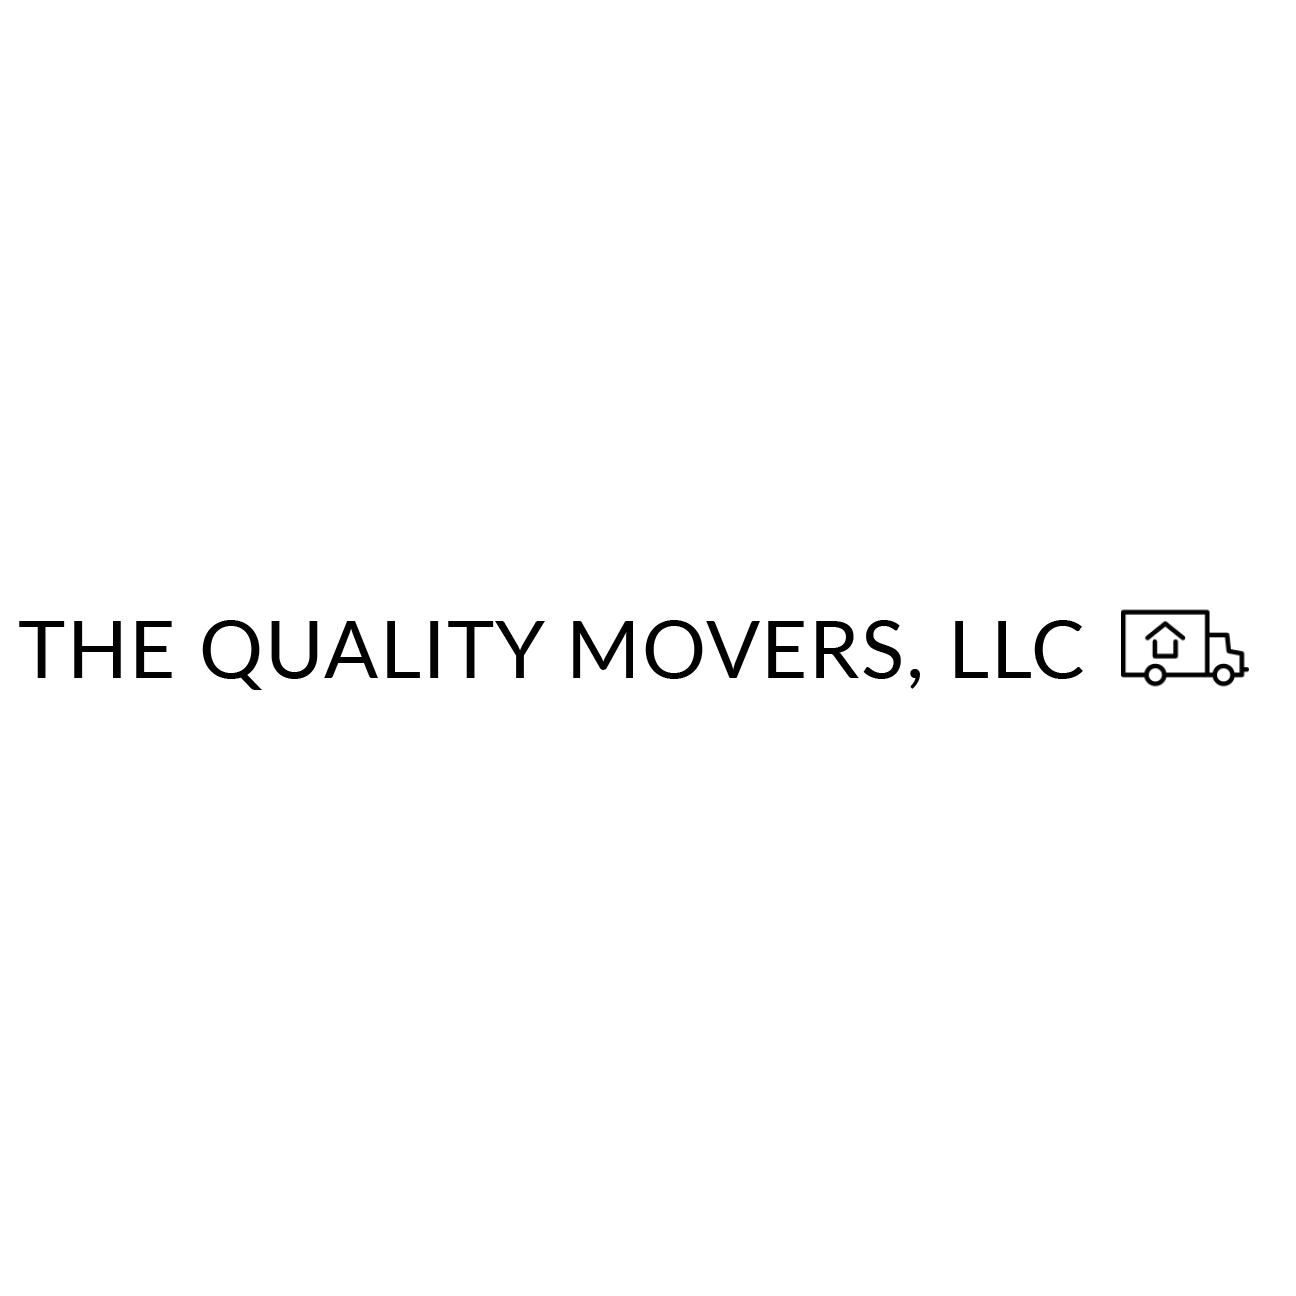 The Quality Movers, LLC - Garland, TX 75042 - (469)612-2383 | ShowMeLocal.com